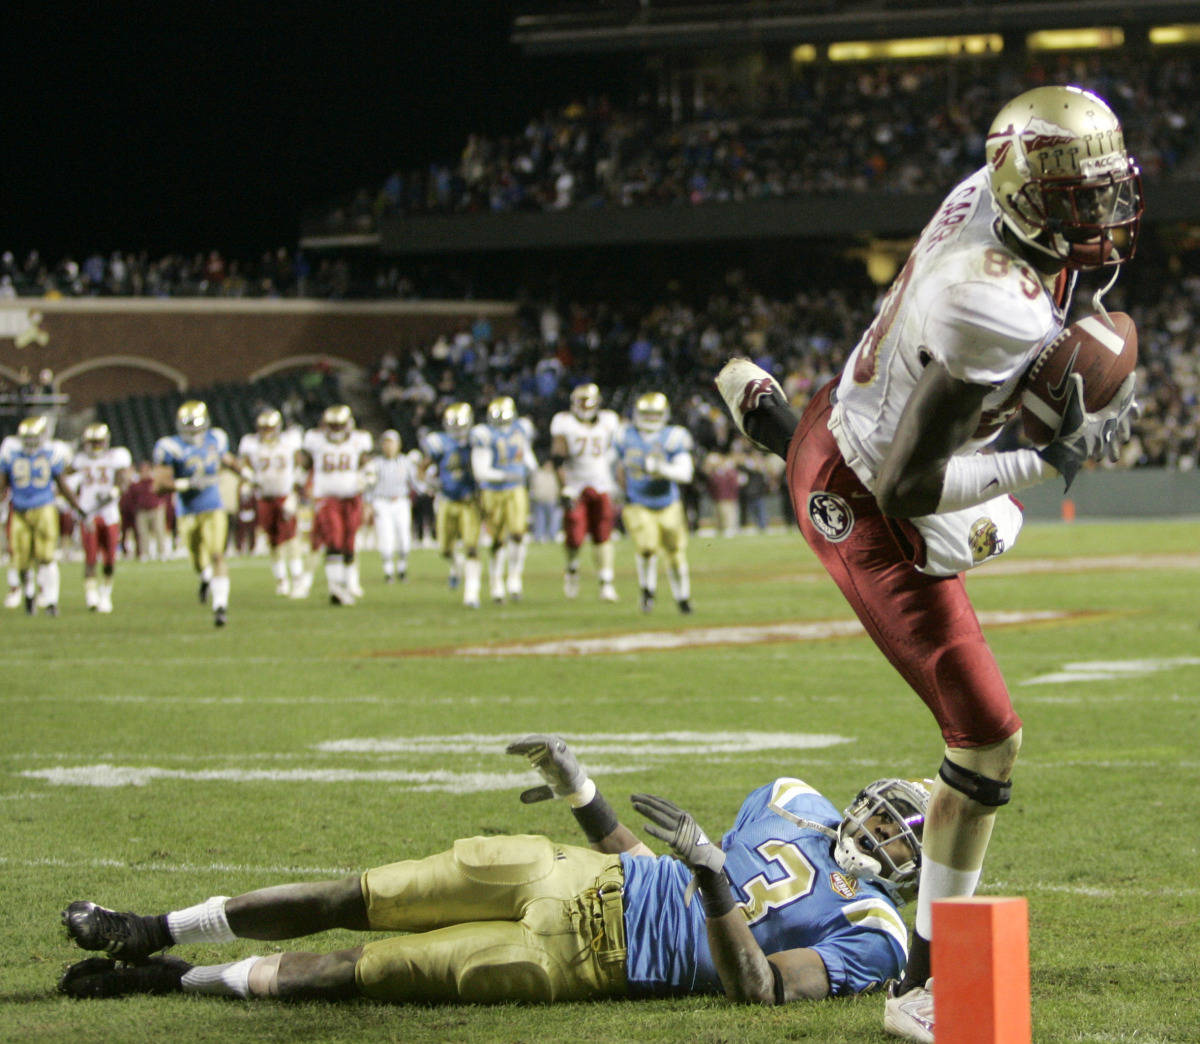 Florida State wide receiver Greg Carr, right, hauls in a 30-yard touchdown pass over UCLA cornerback Rodney Van (3) during the fourth quarter of the Emerald Bowl college football game in San Francisco, Wednesday, Dec. 27, 2006.(AP Photo/Marcio Jose Sanchez)